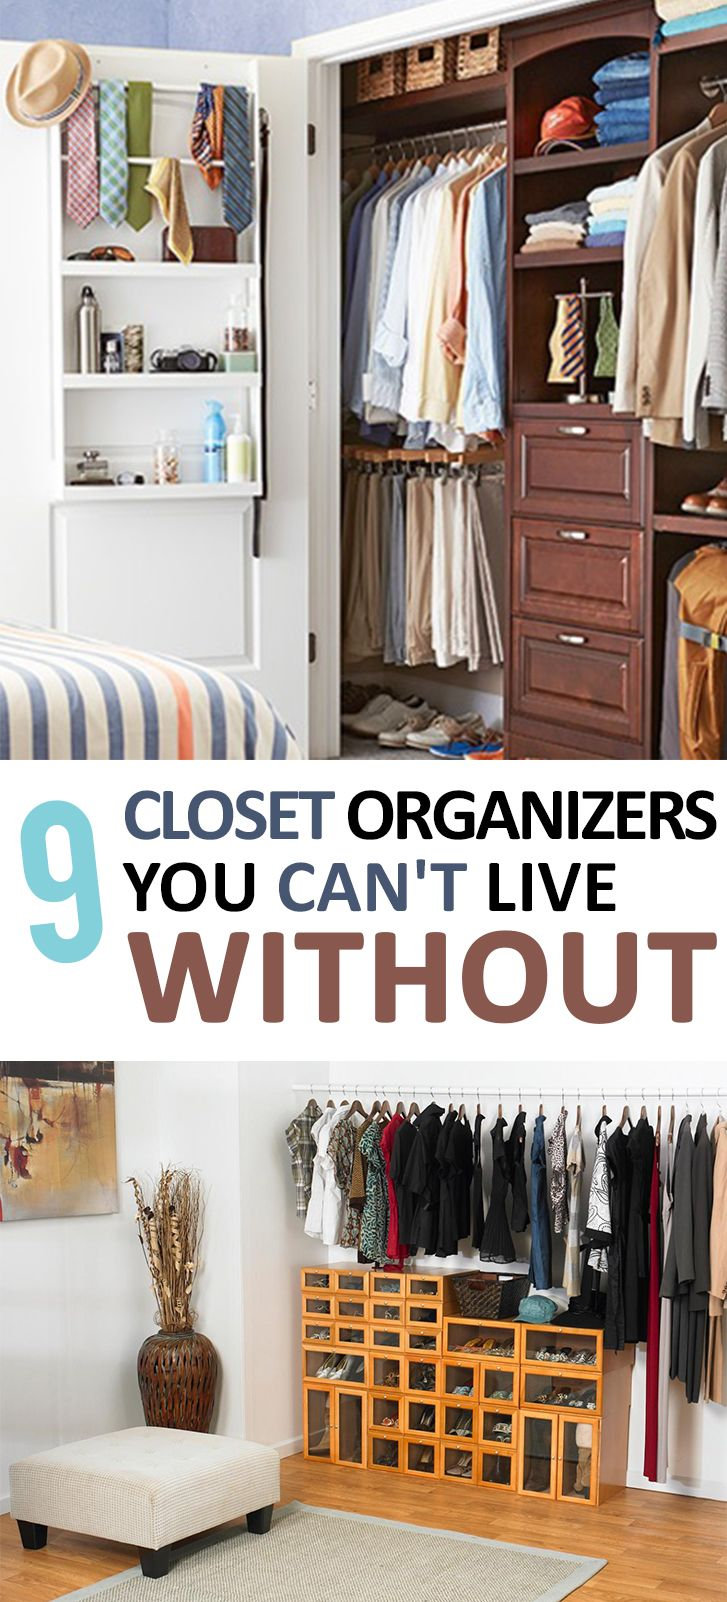 Closet Organization Tips 25+ best closet organization tips ideas on pinterest | bedroom